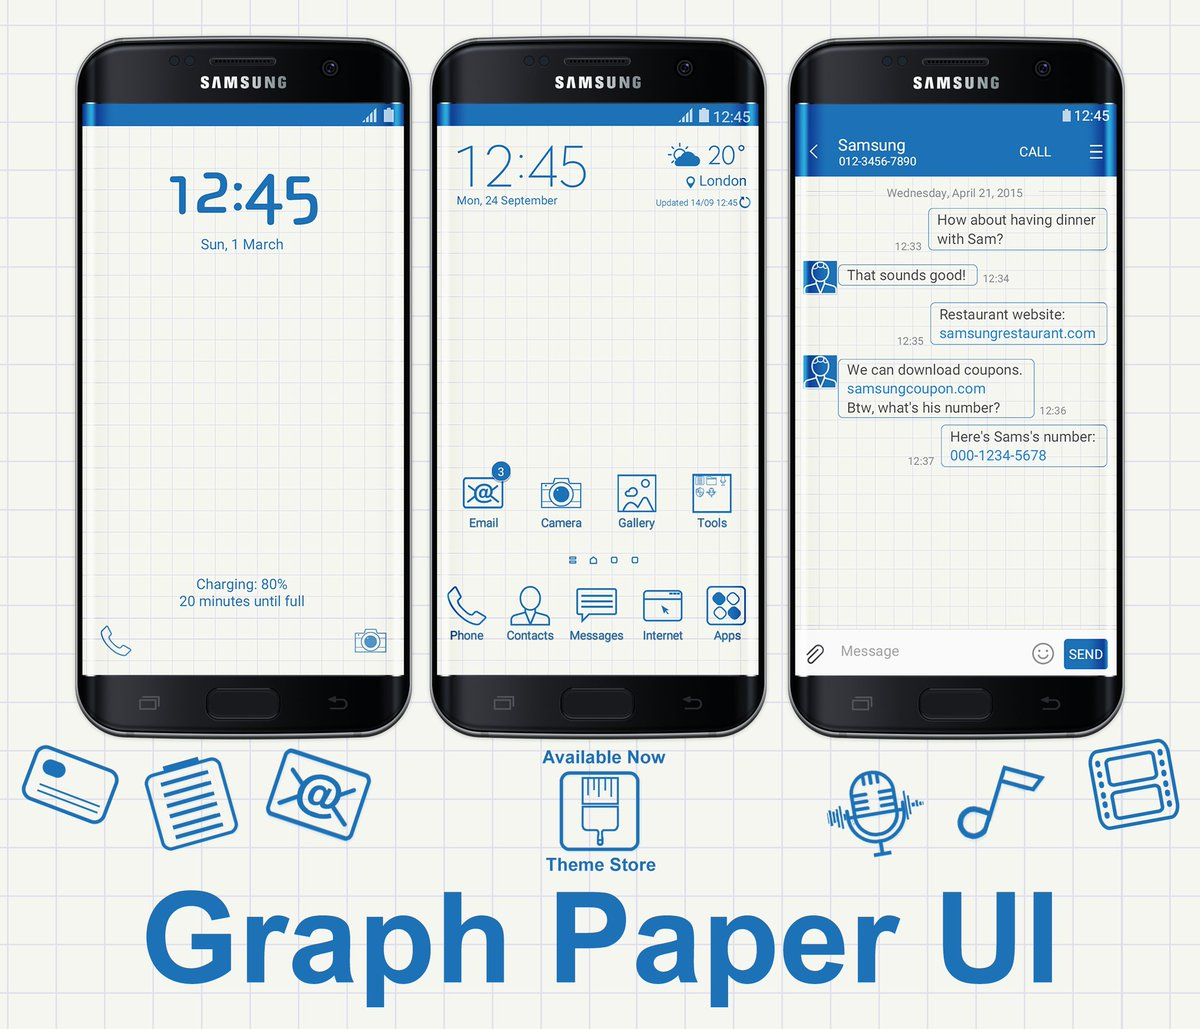 anup rode on twitter graph paper ui theme available now samsung theme store and its free downloadhttpstco5565xt9hzb